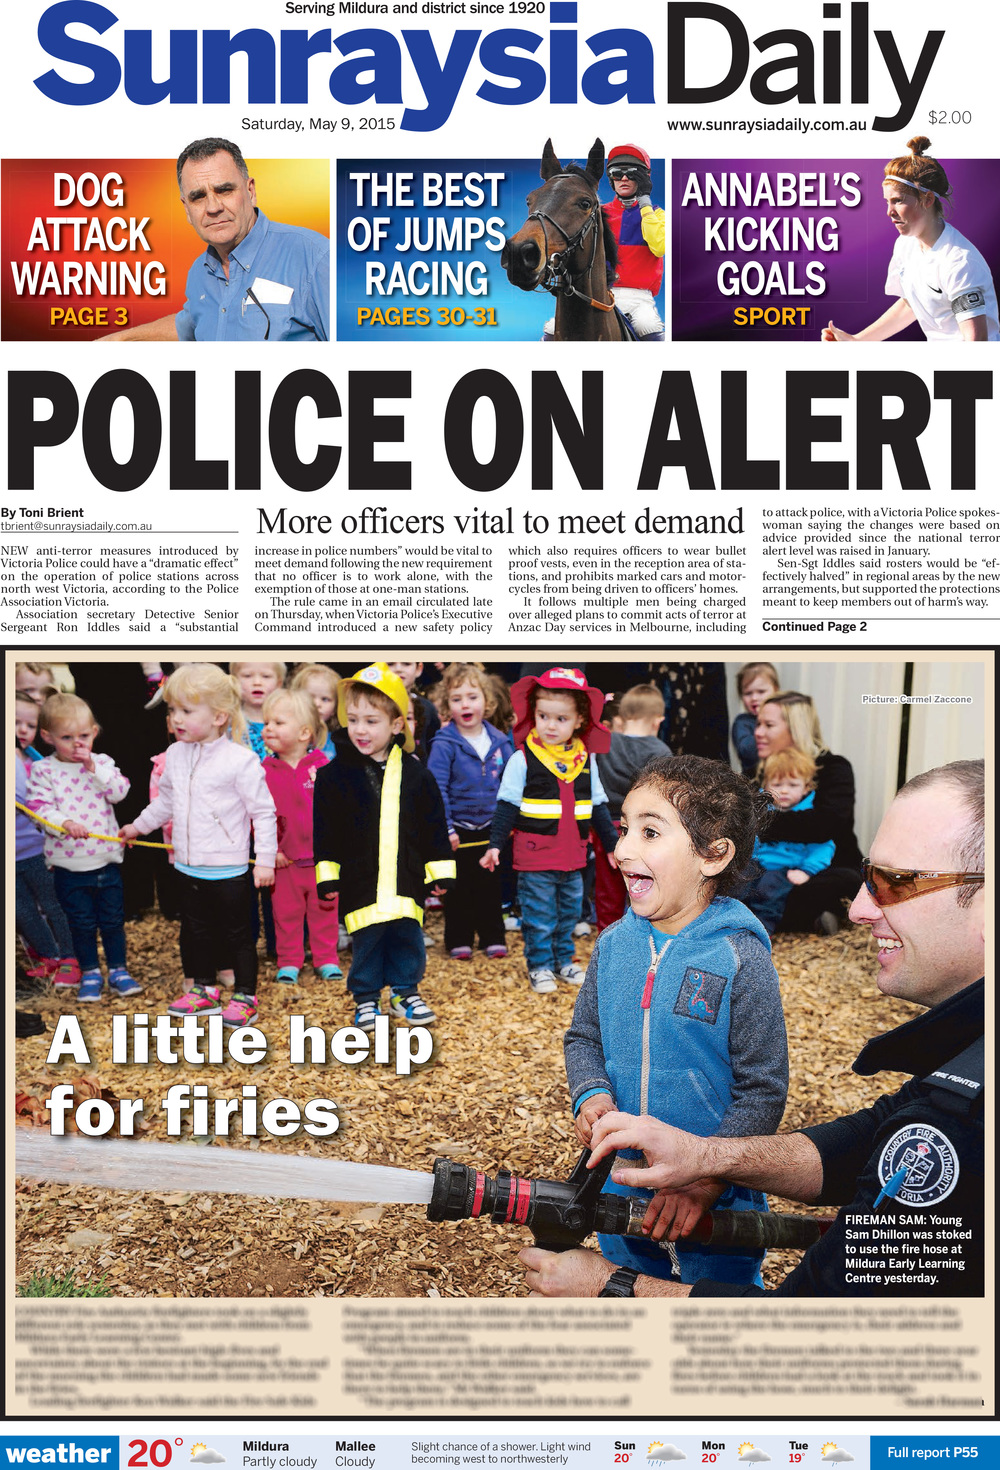 Police on alert , Sunraysia Daily, May 9, 2015. Click on images below to enlarge text